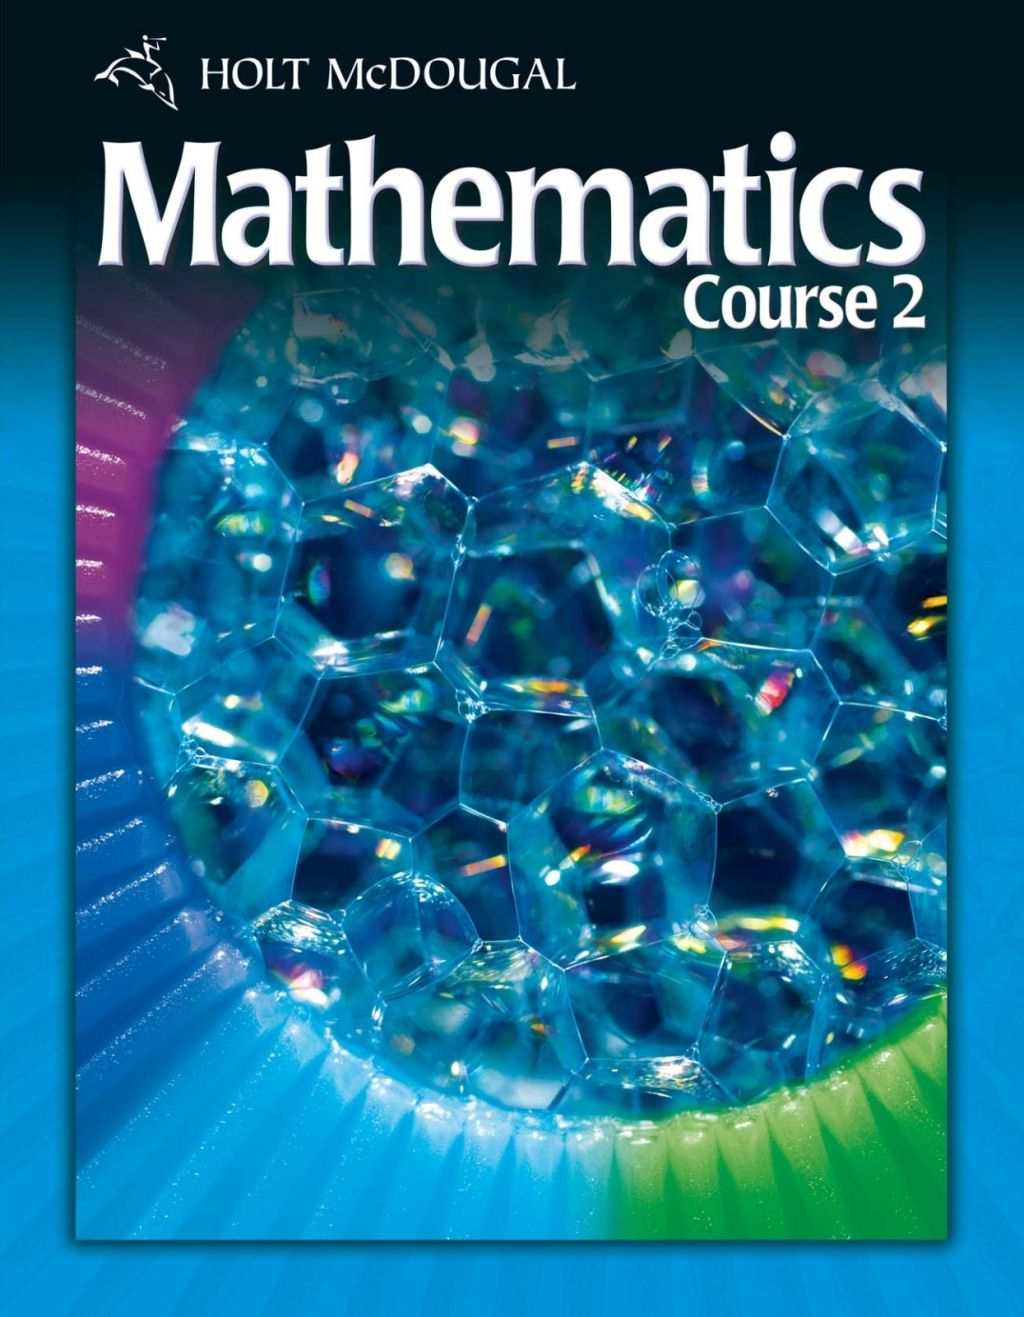 Holt Mcdougal Mathematics Course 2 Ebook Rental In